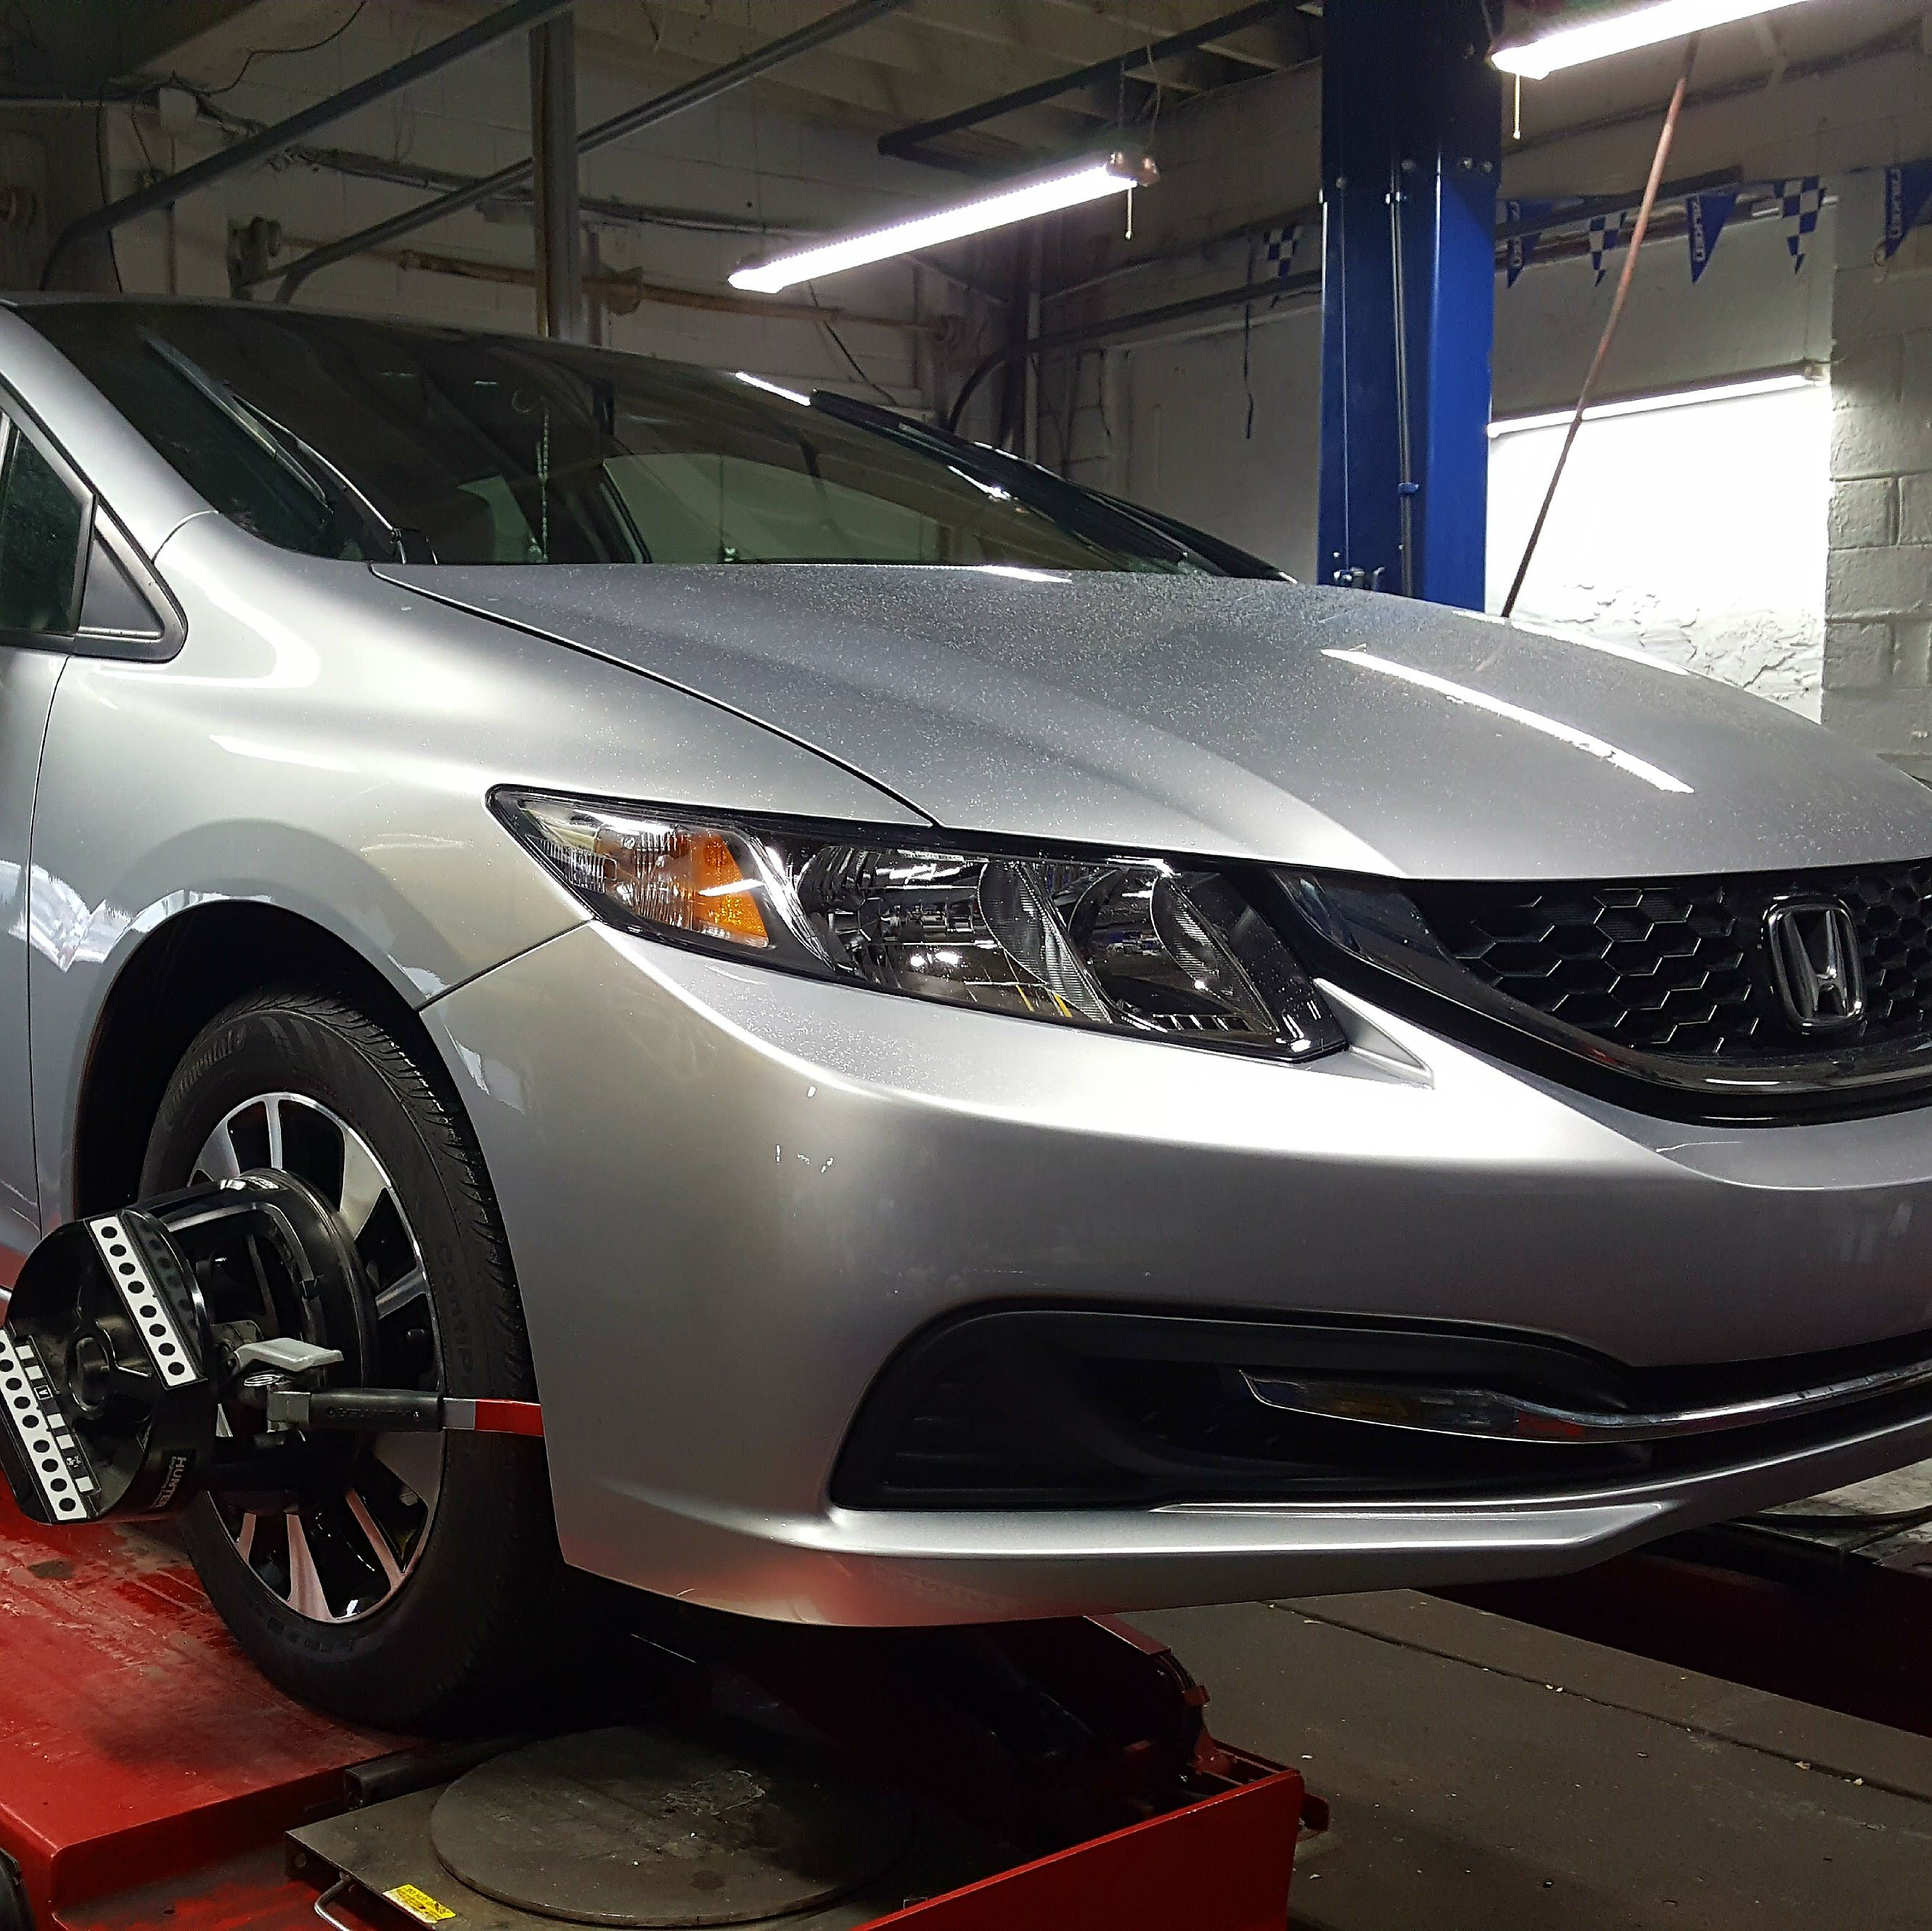 2014 Honda Civic At Our Service Facility For An 4 Wheel Alignment Honda Civic 2014 Honda Civic Car Repair Service